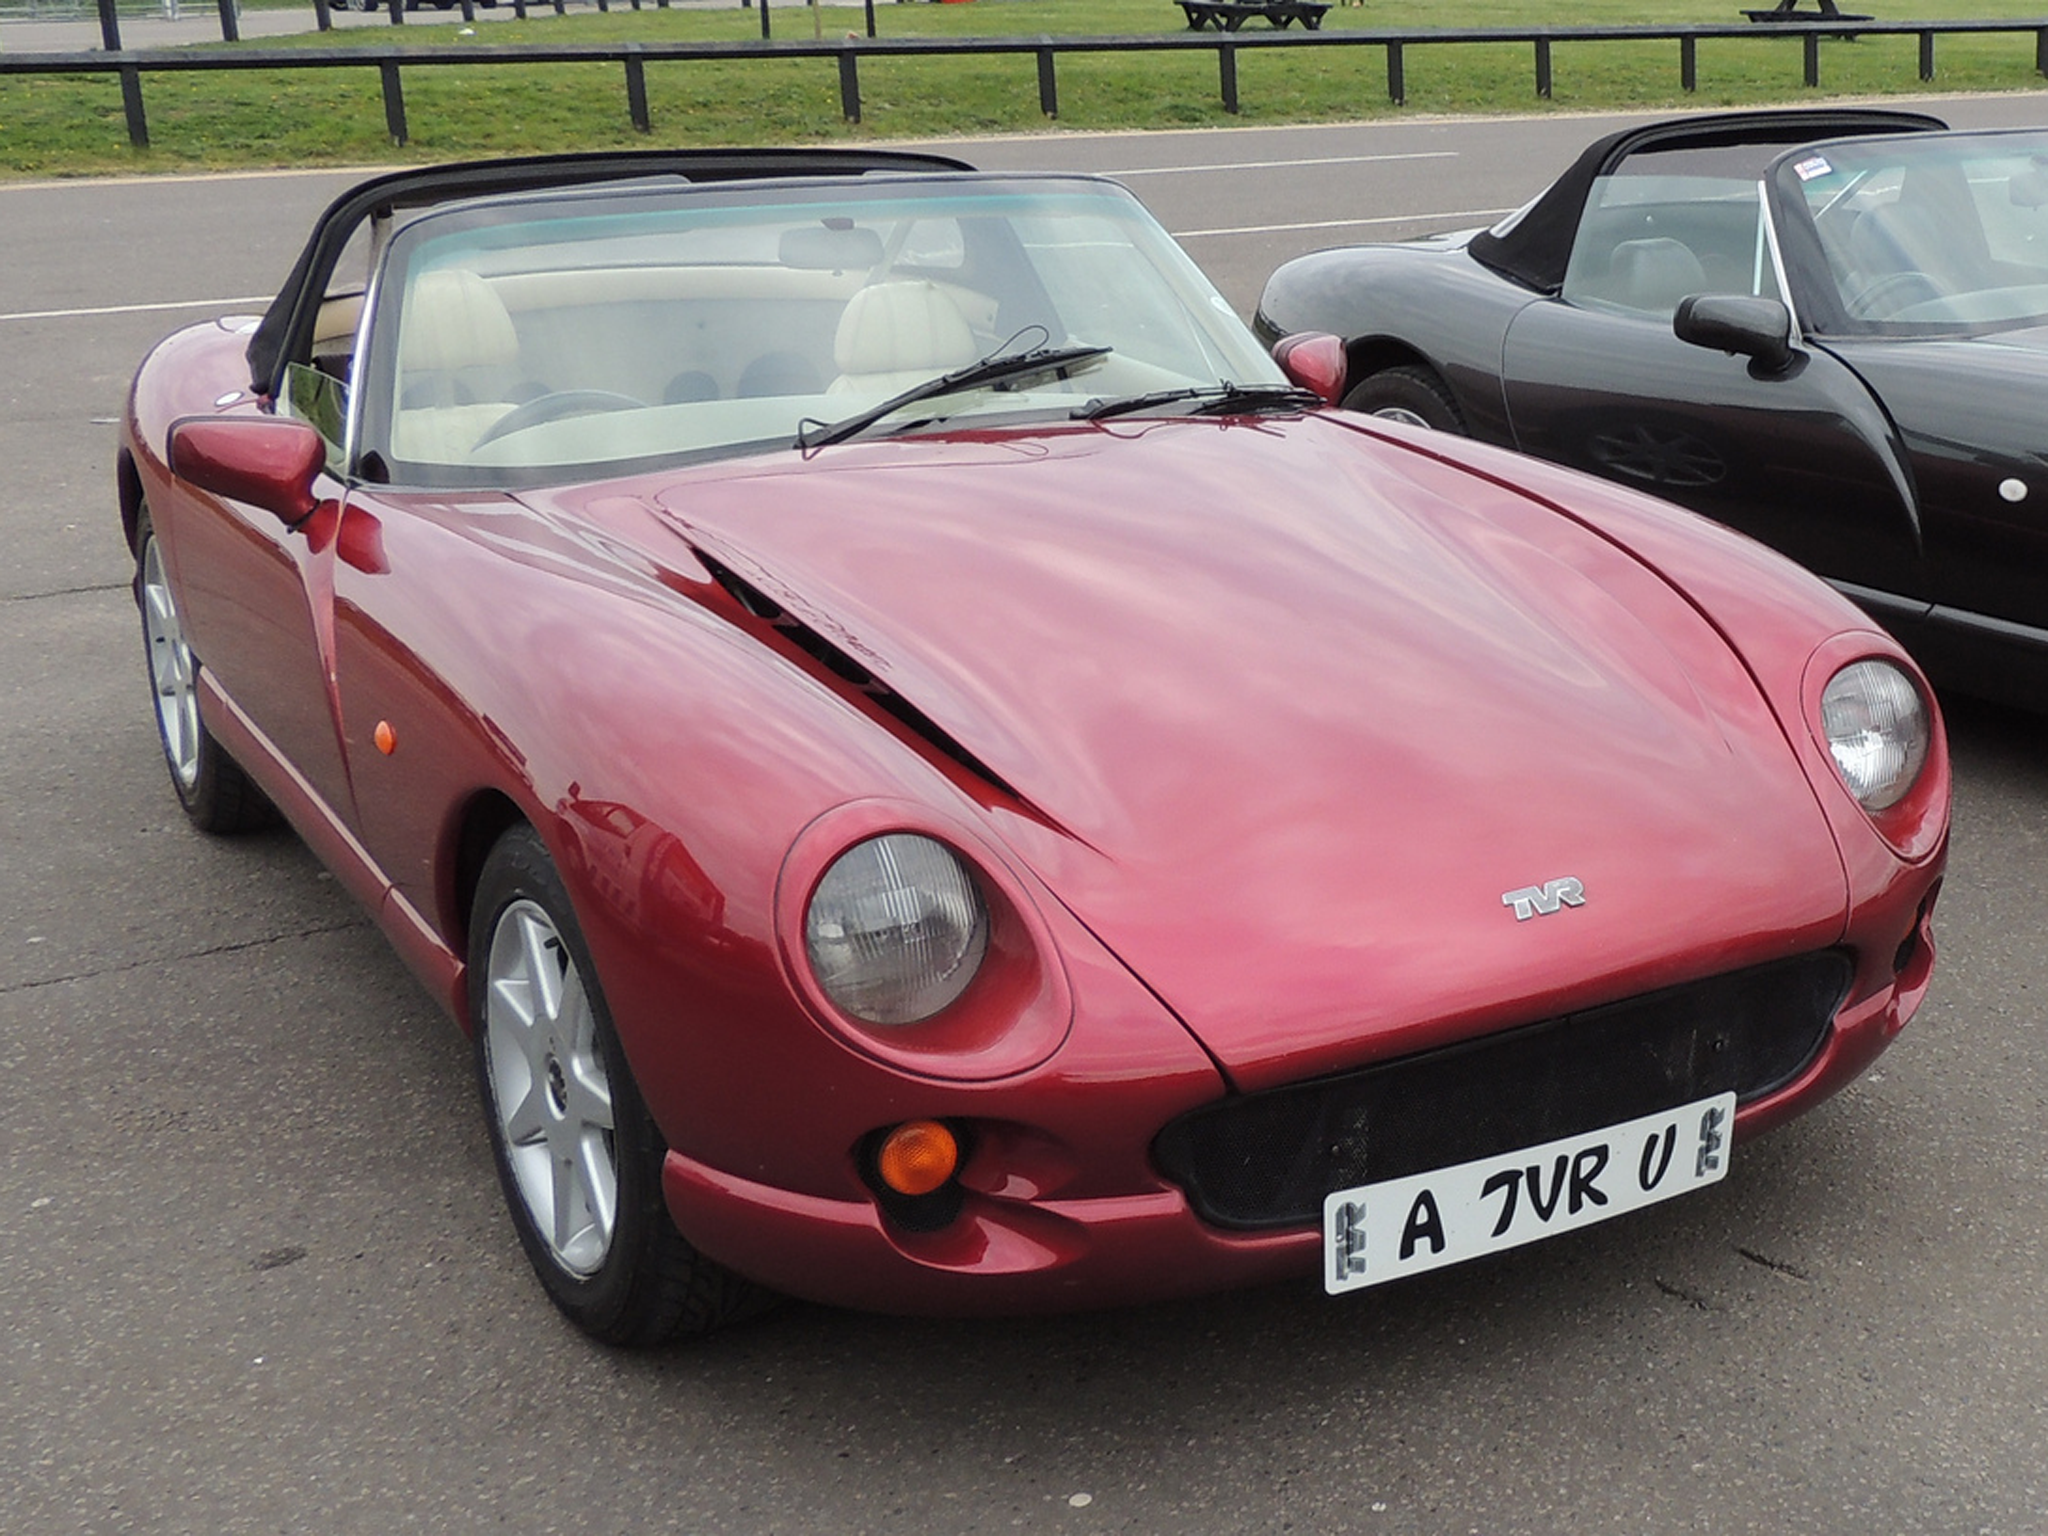 front Inspiring Tvr Griffith Wheel Nut torque Cars Trend